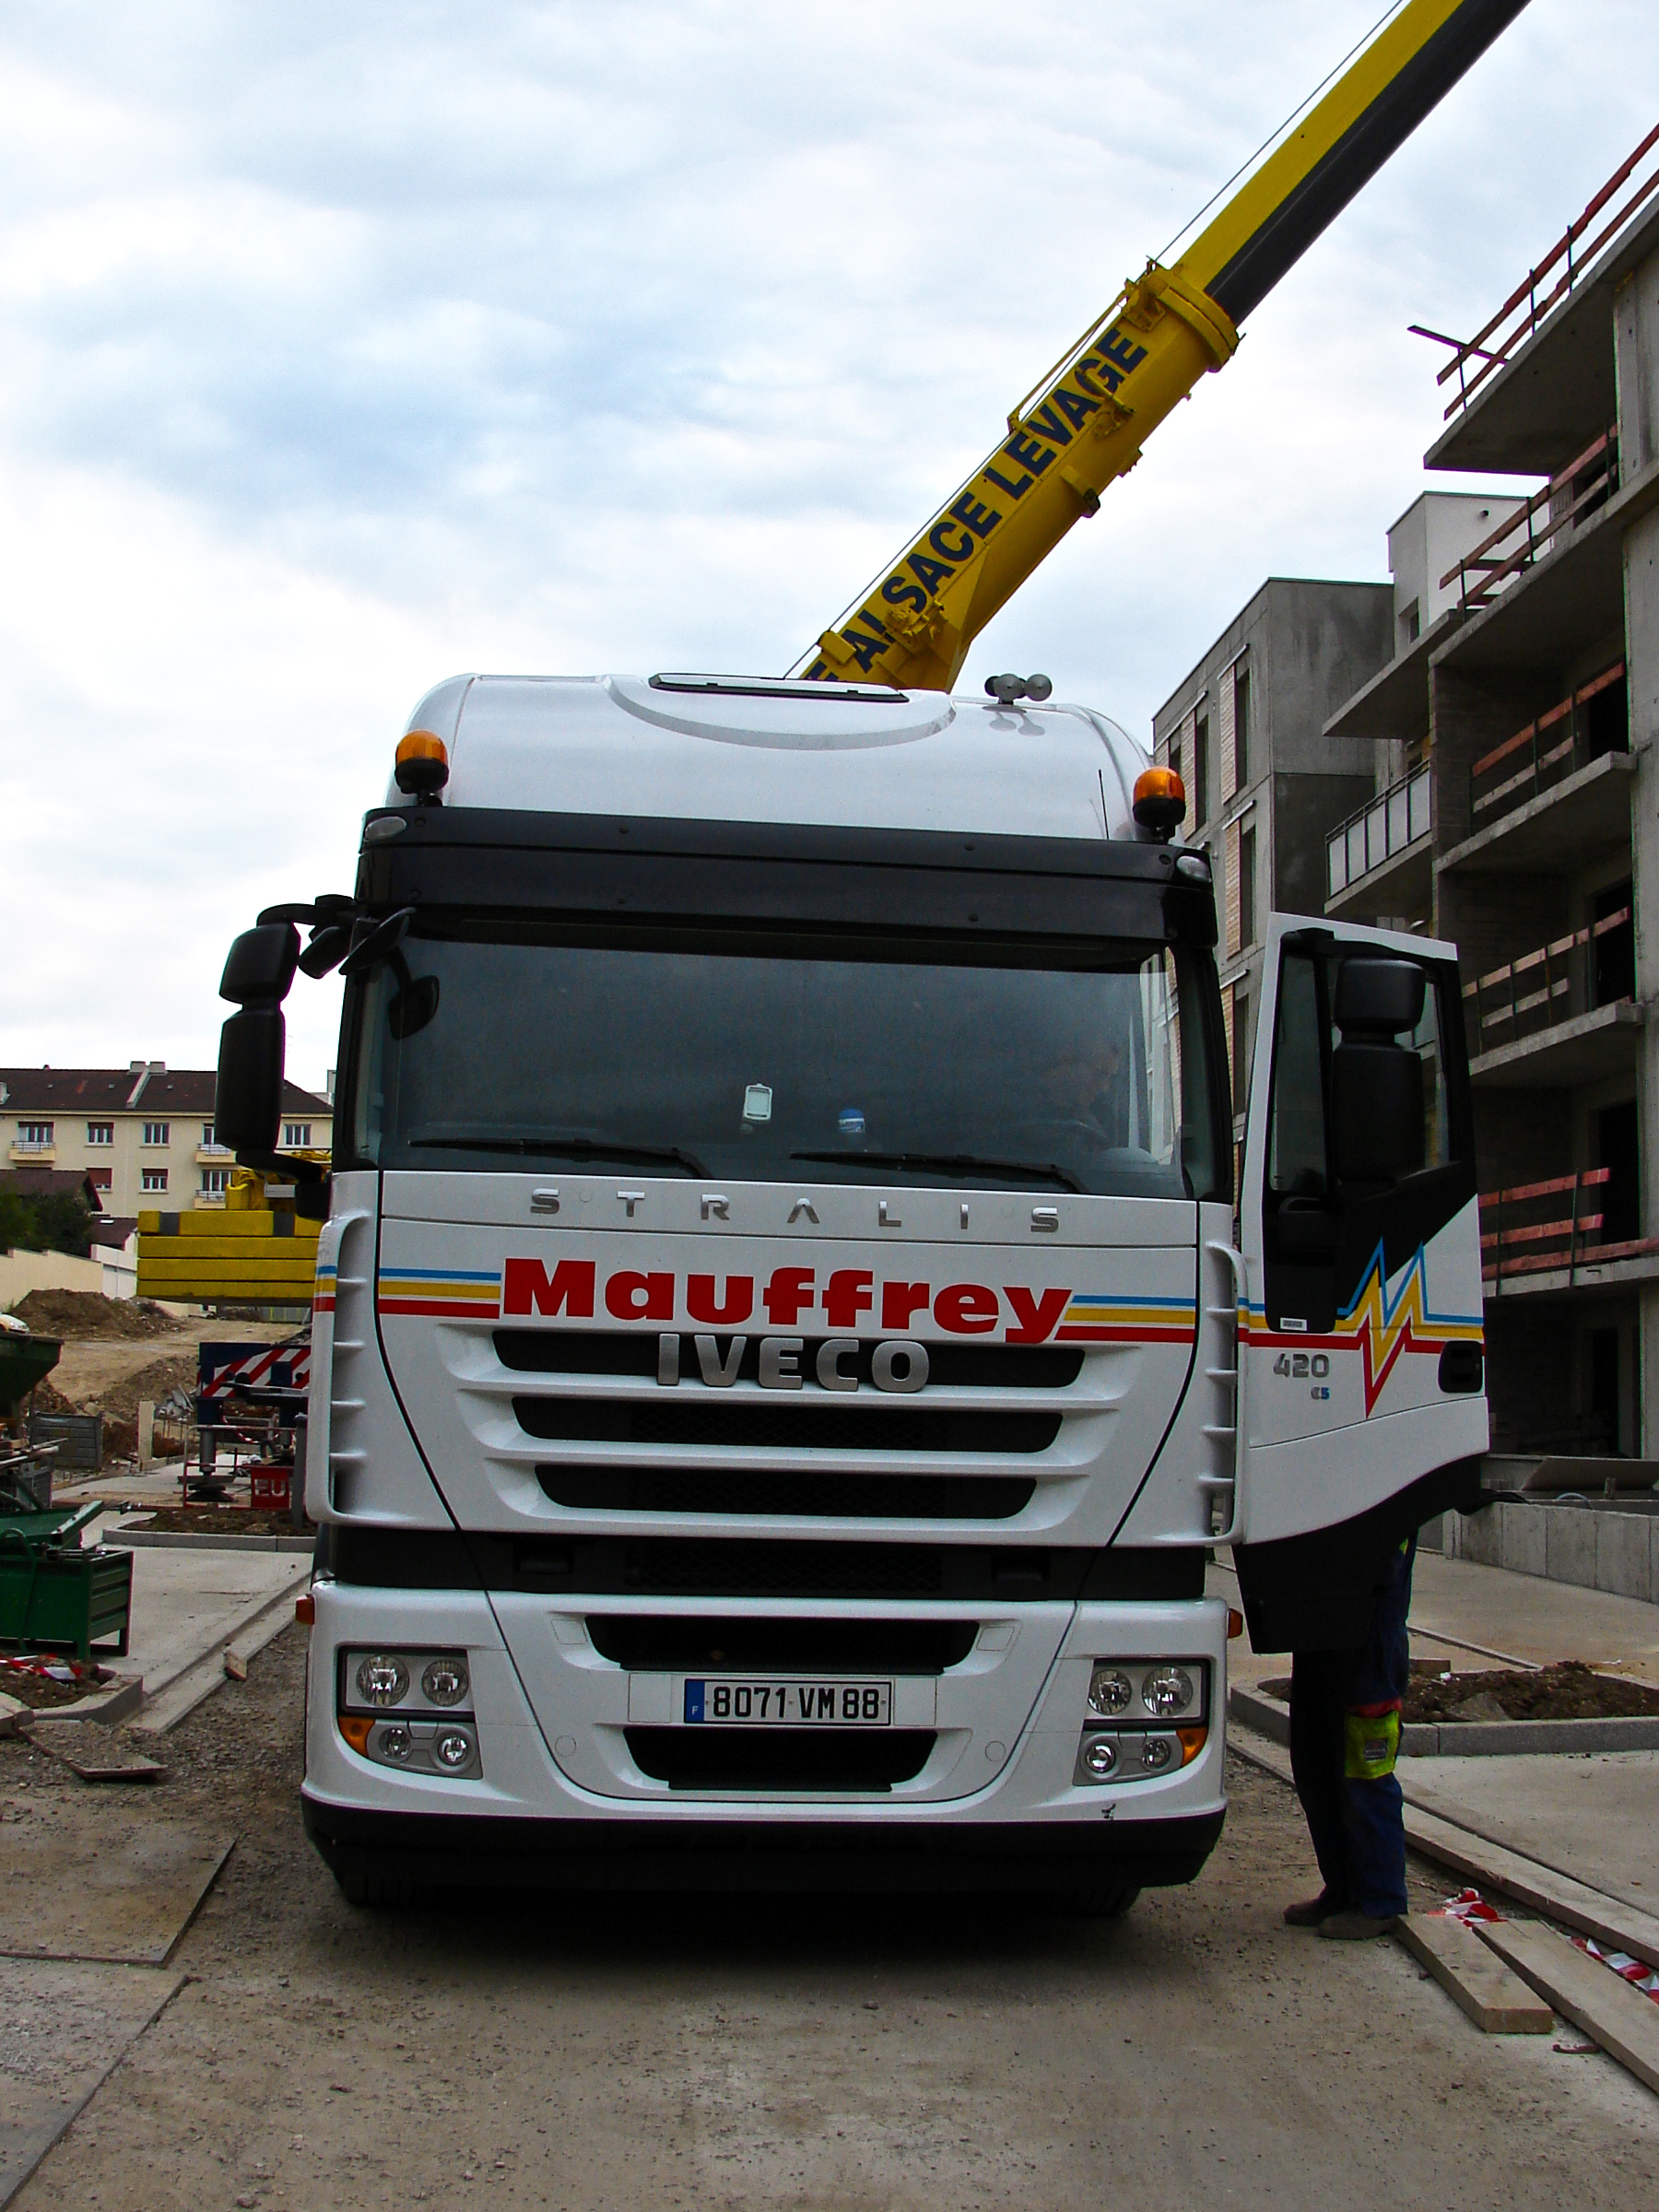 Iveco Stralis 420 Mauffrey | Flickr - Photo Sharing!